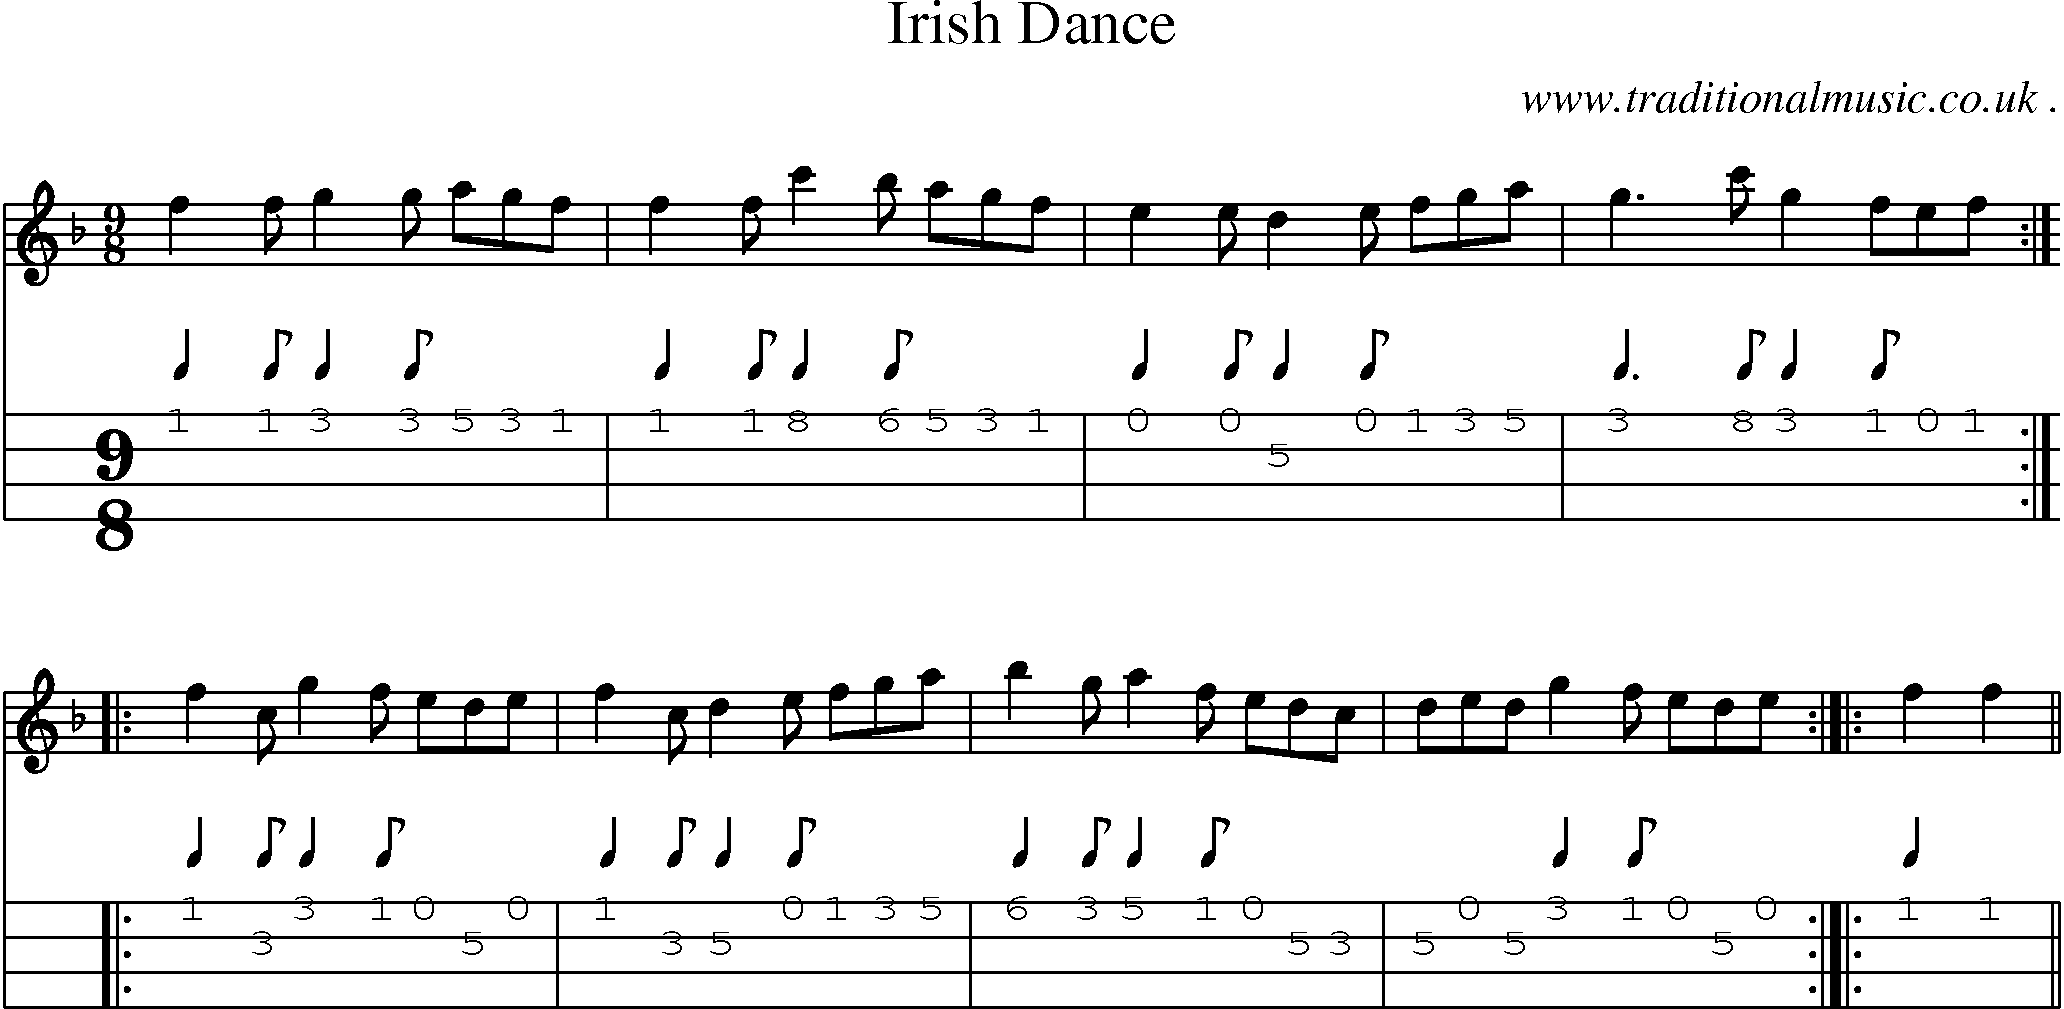 Folk and Traditional Music, Sheet-Music, Mandolin tab, midi, mp3 and PDF for: Irish Dance